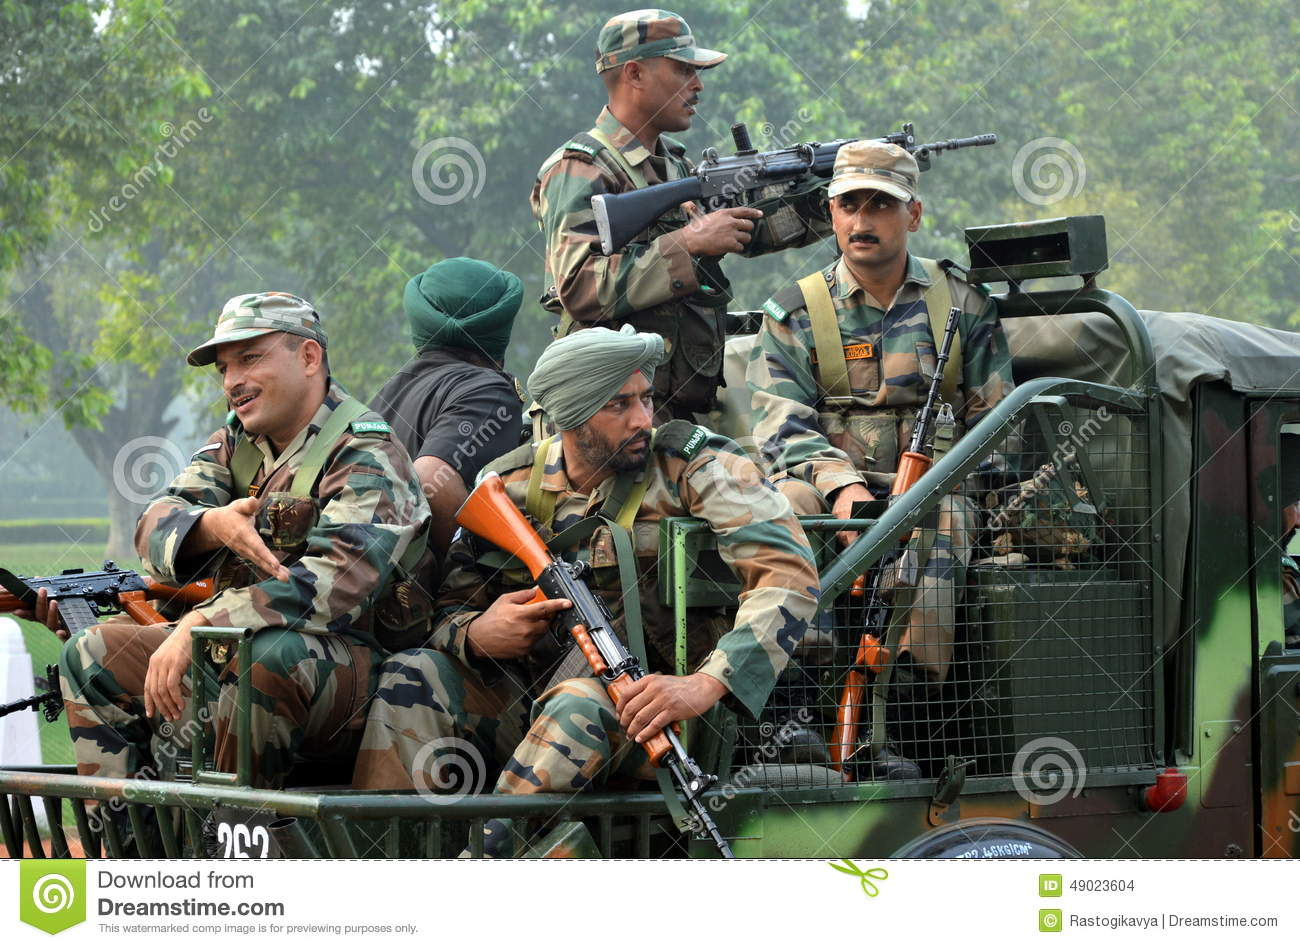 indian army essay Army day in india is celebrated on 15th of january find information about indian army day, army day 2018 date, army day parade and why it is celebrated also know facts about indian army.